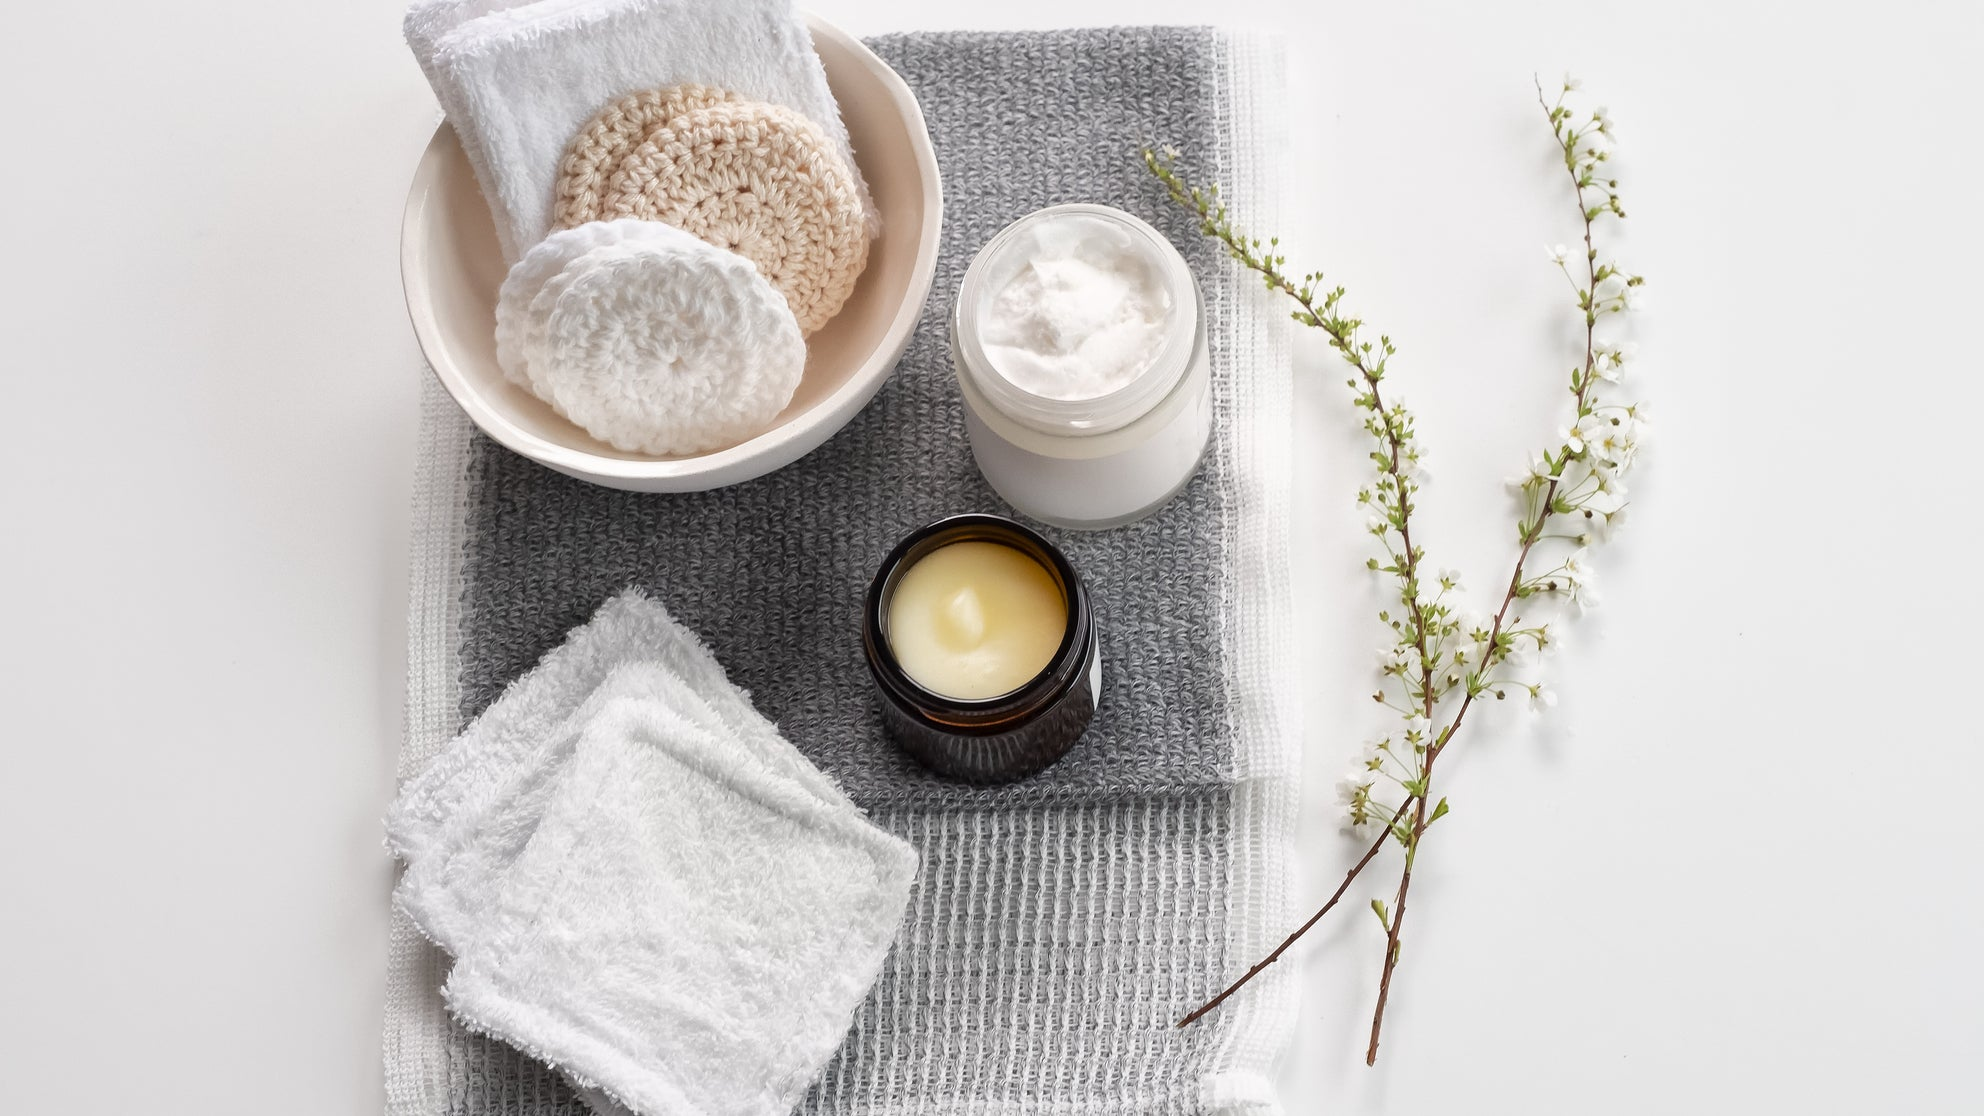 How to Turn Your Nighttime Beauty Routine Into a Relaxing Ritual